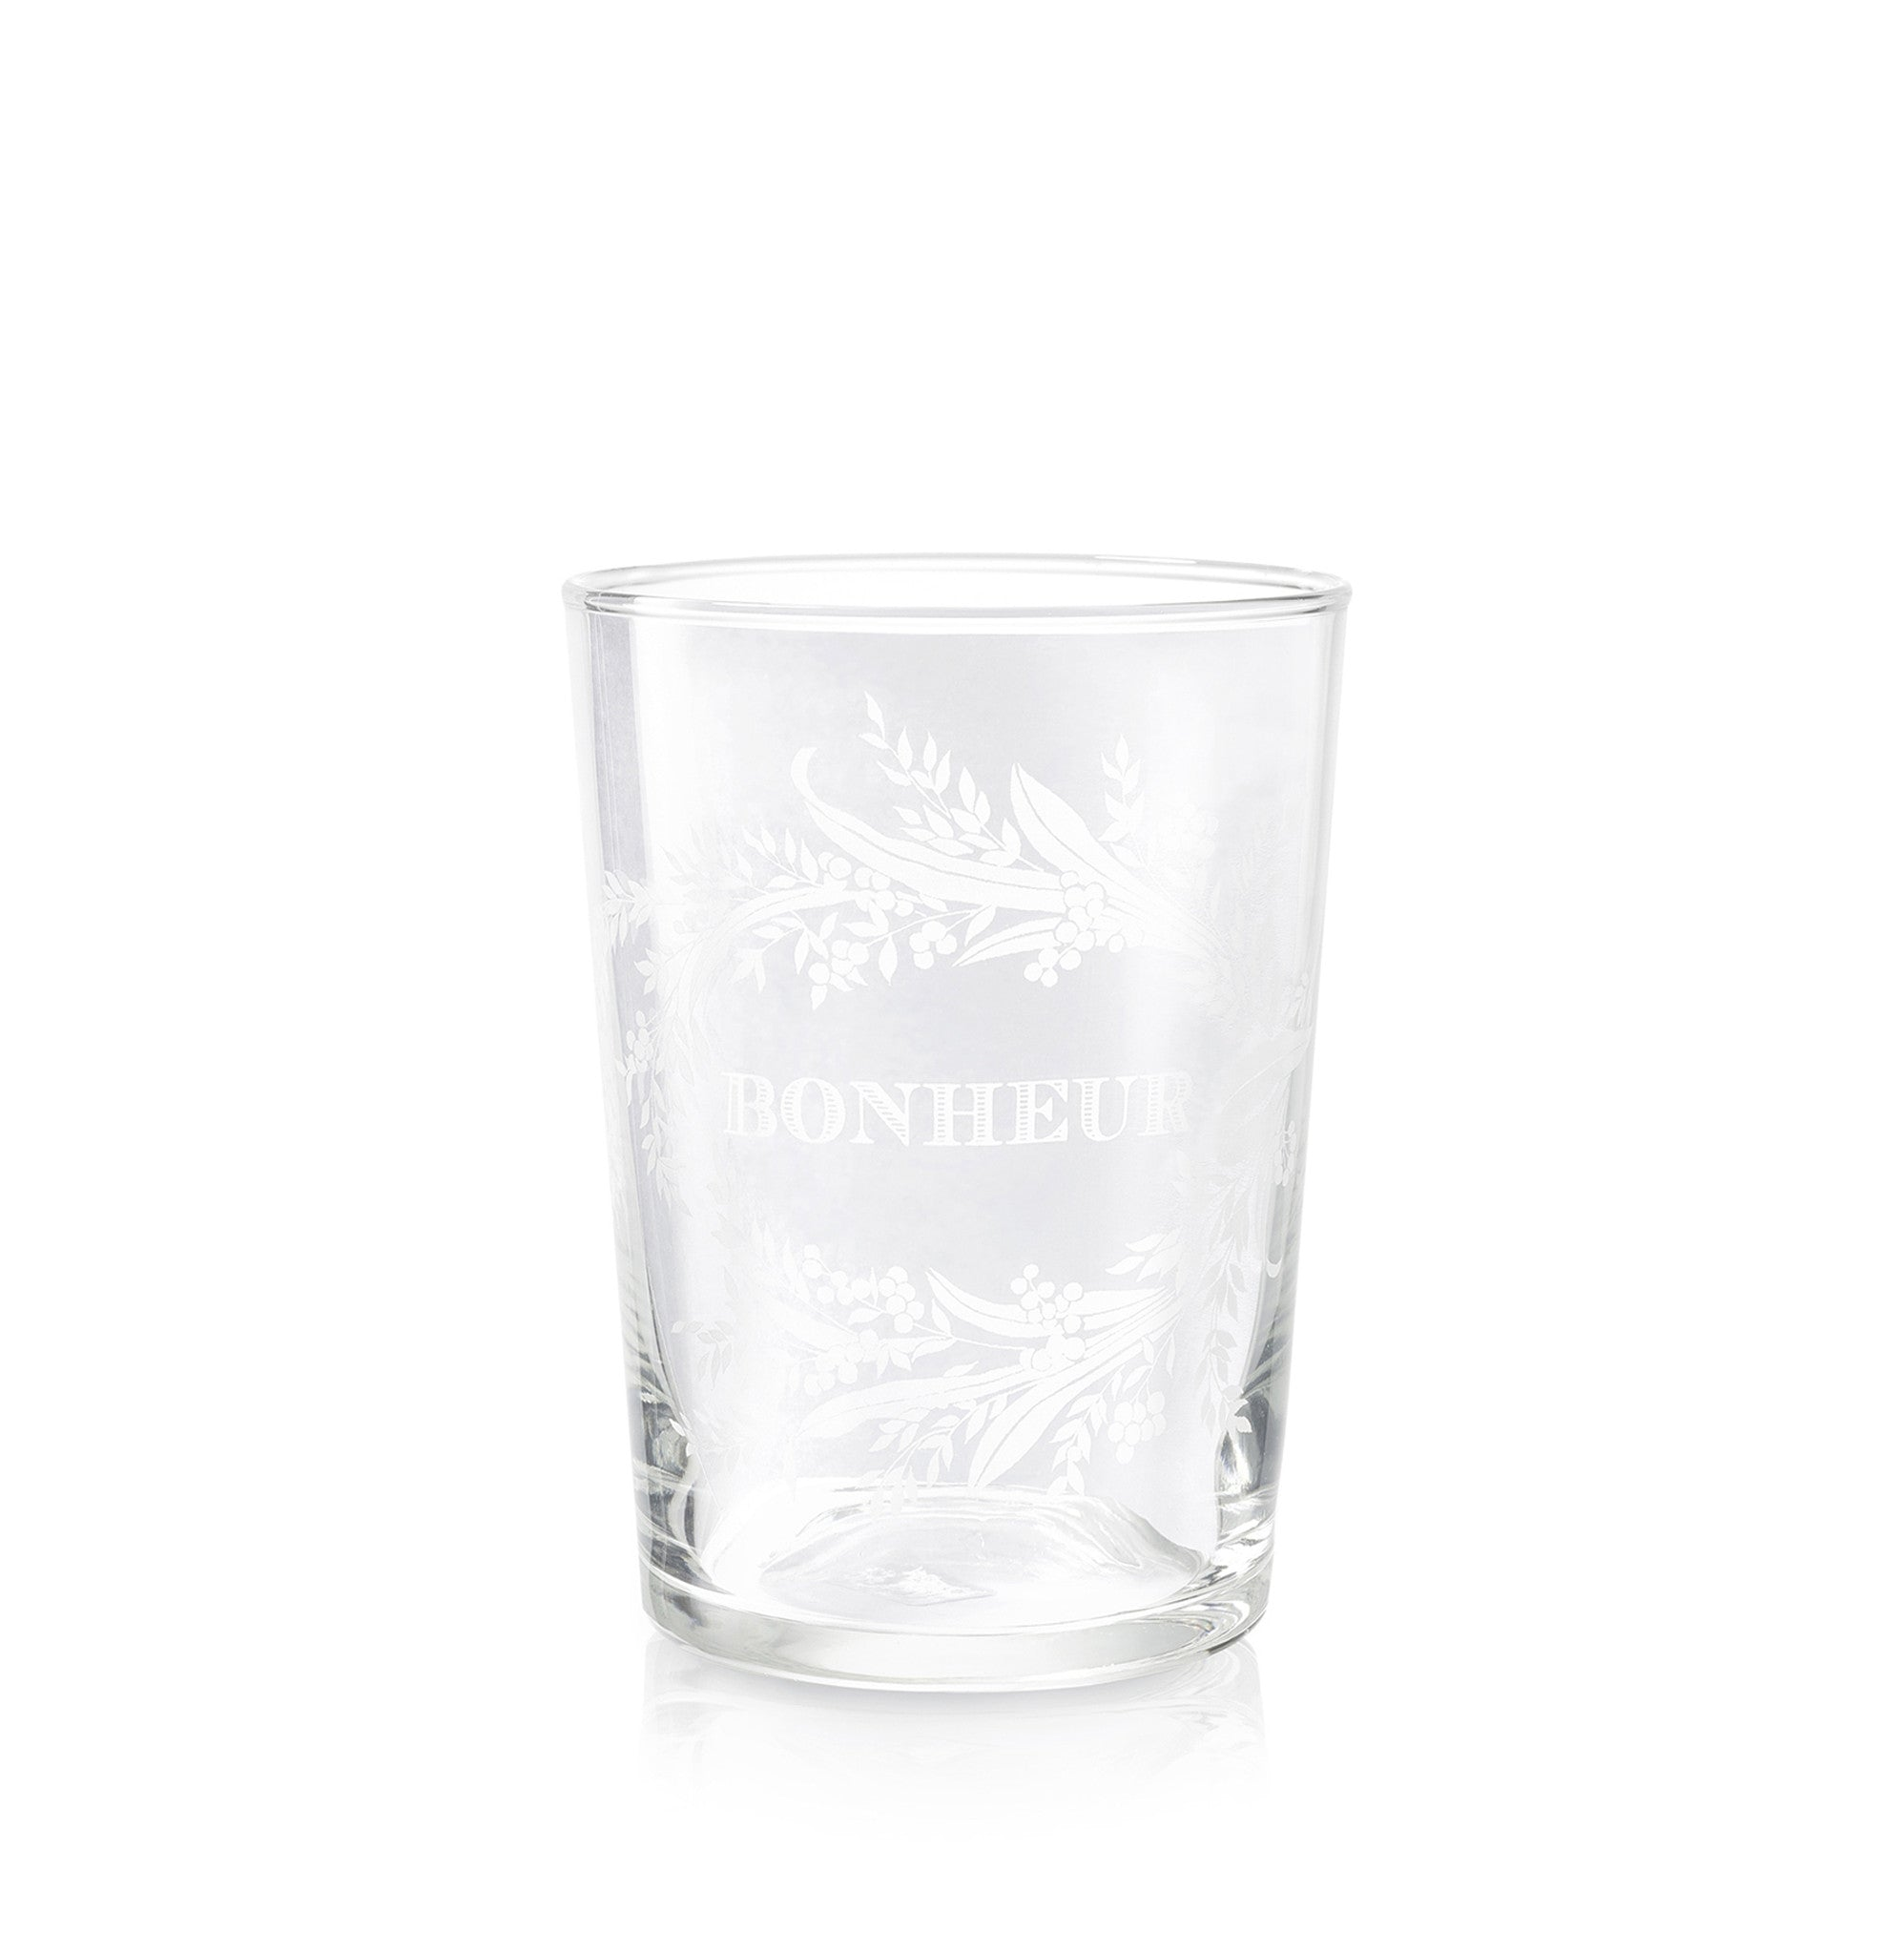 Amour Bonheur Etched Glass Tumblers, Set of Two